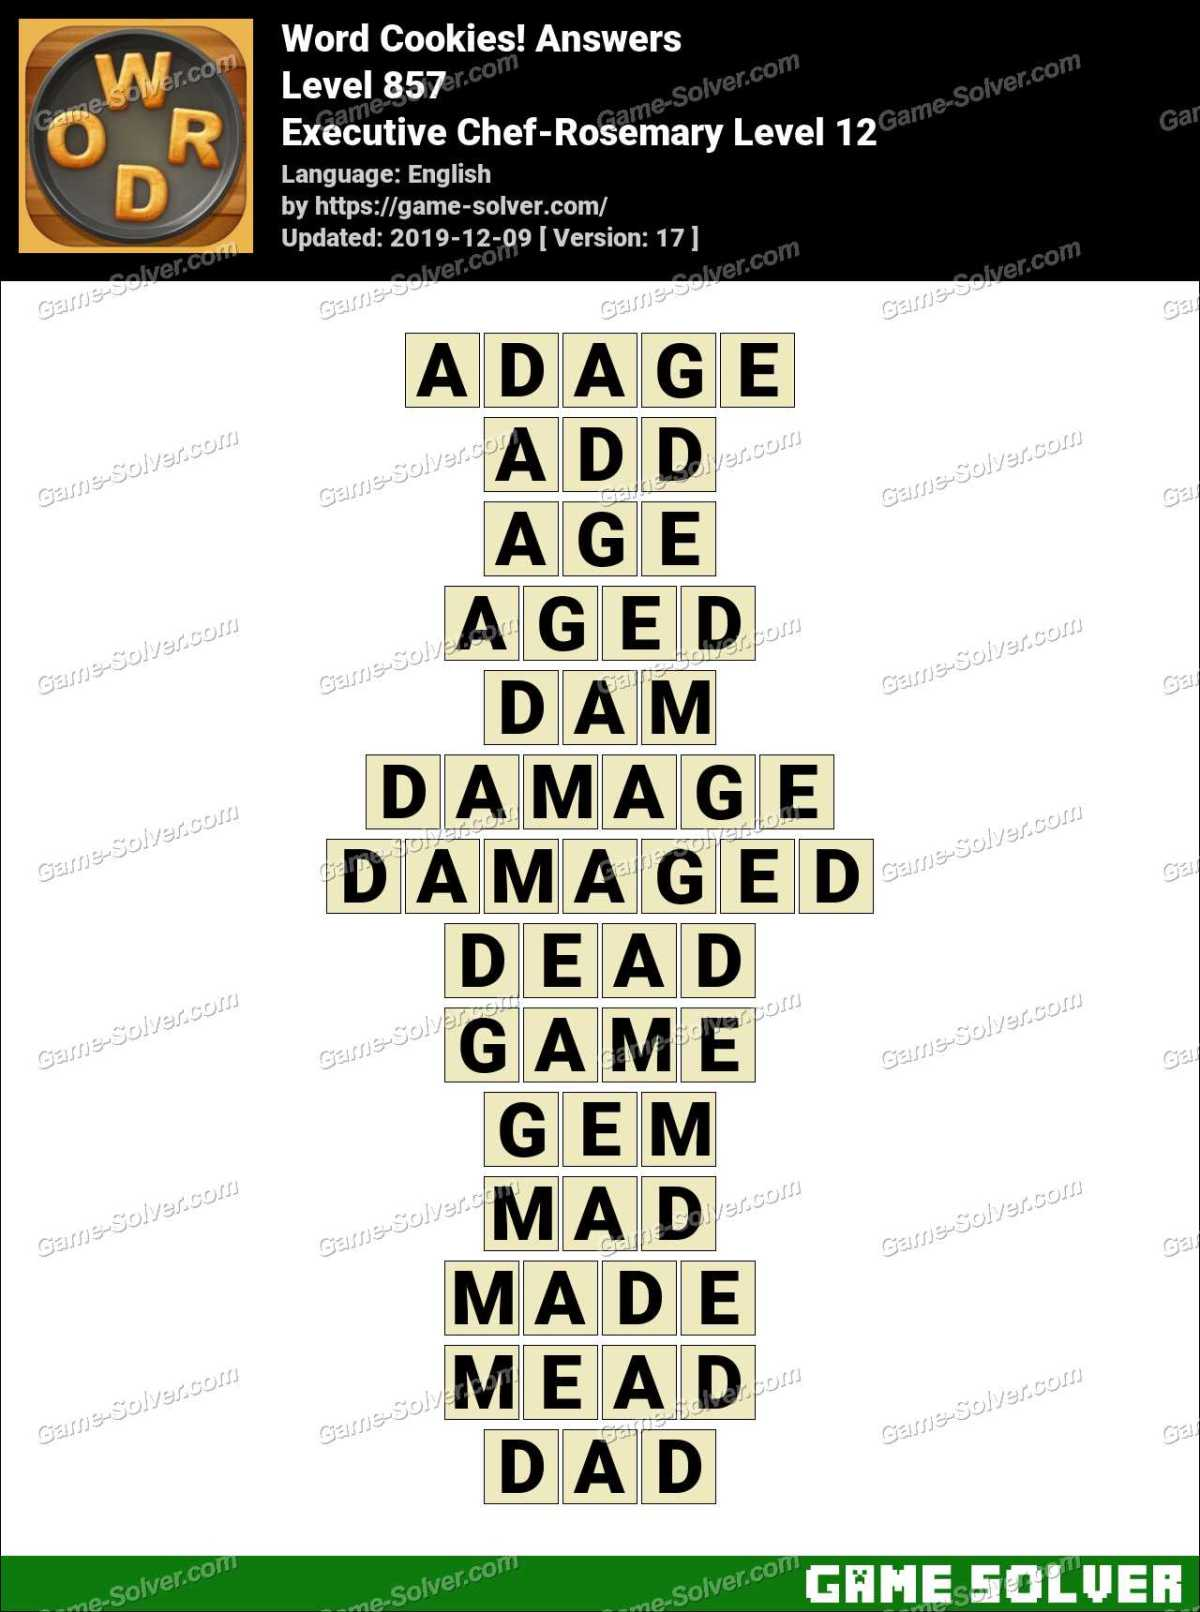 Word Cookies Executive Chef-Rosemary Level 12 Answers